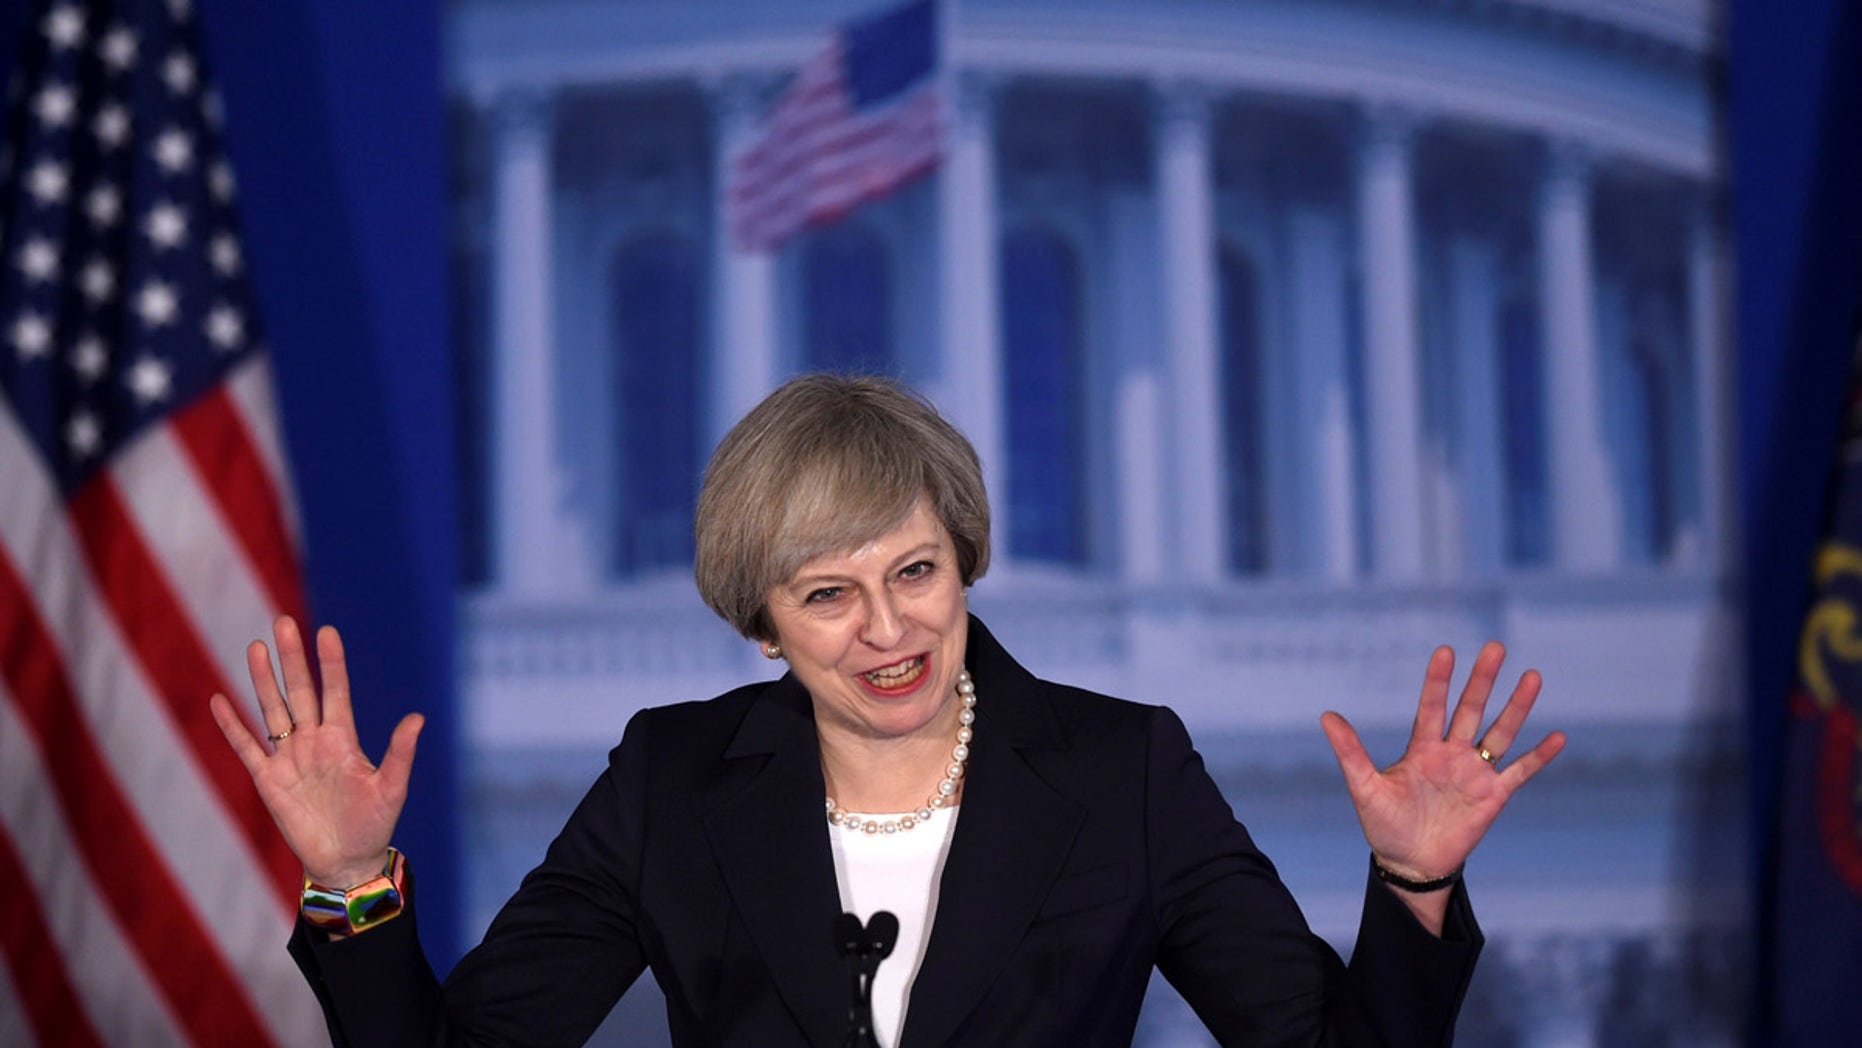 British PM Teresa May speaks during a Republican conference in Philadelphia, Pennsylvania on Jan. 26, 2017.